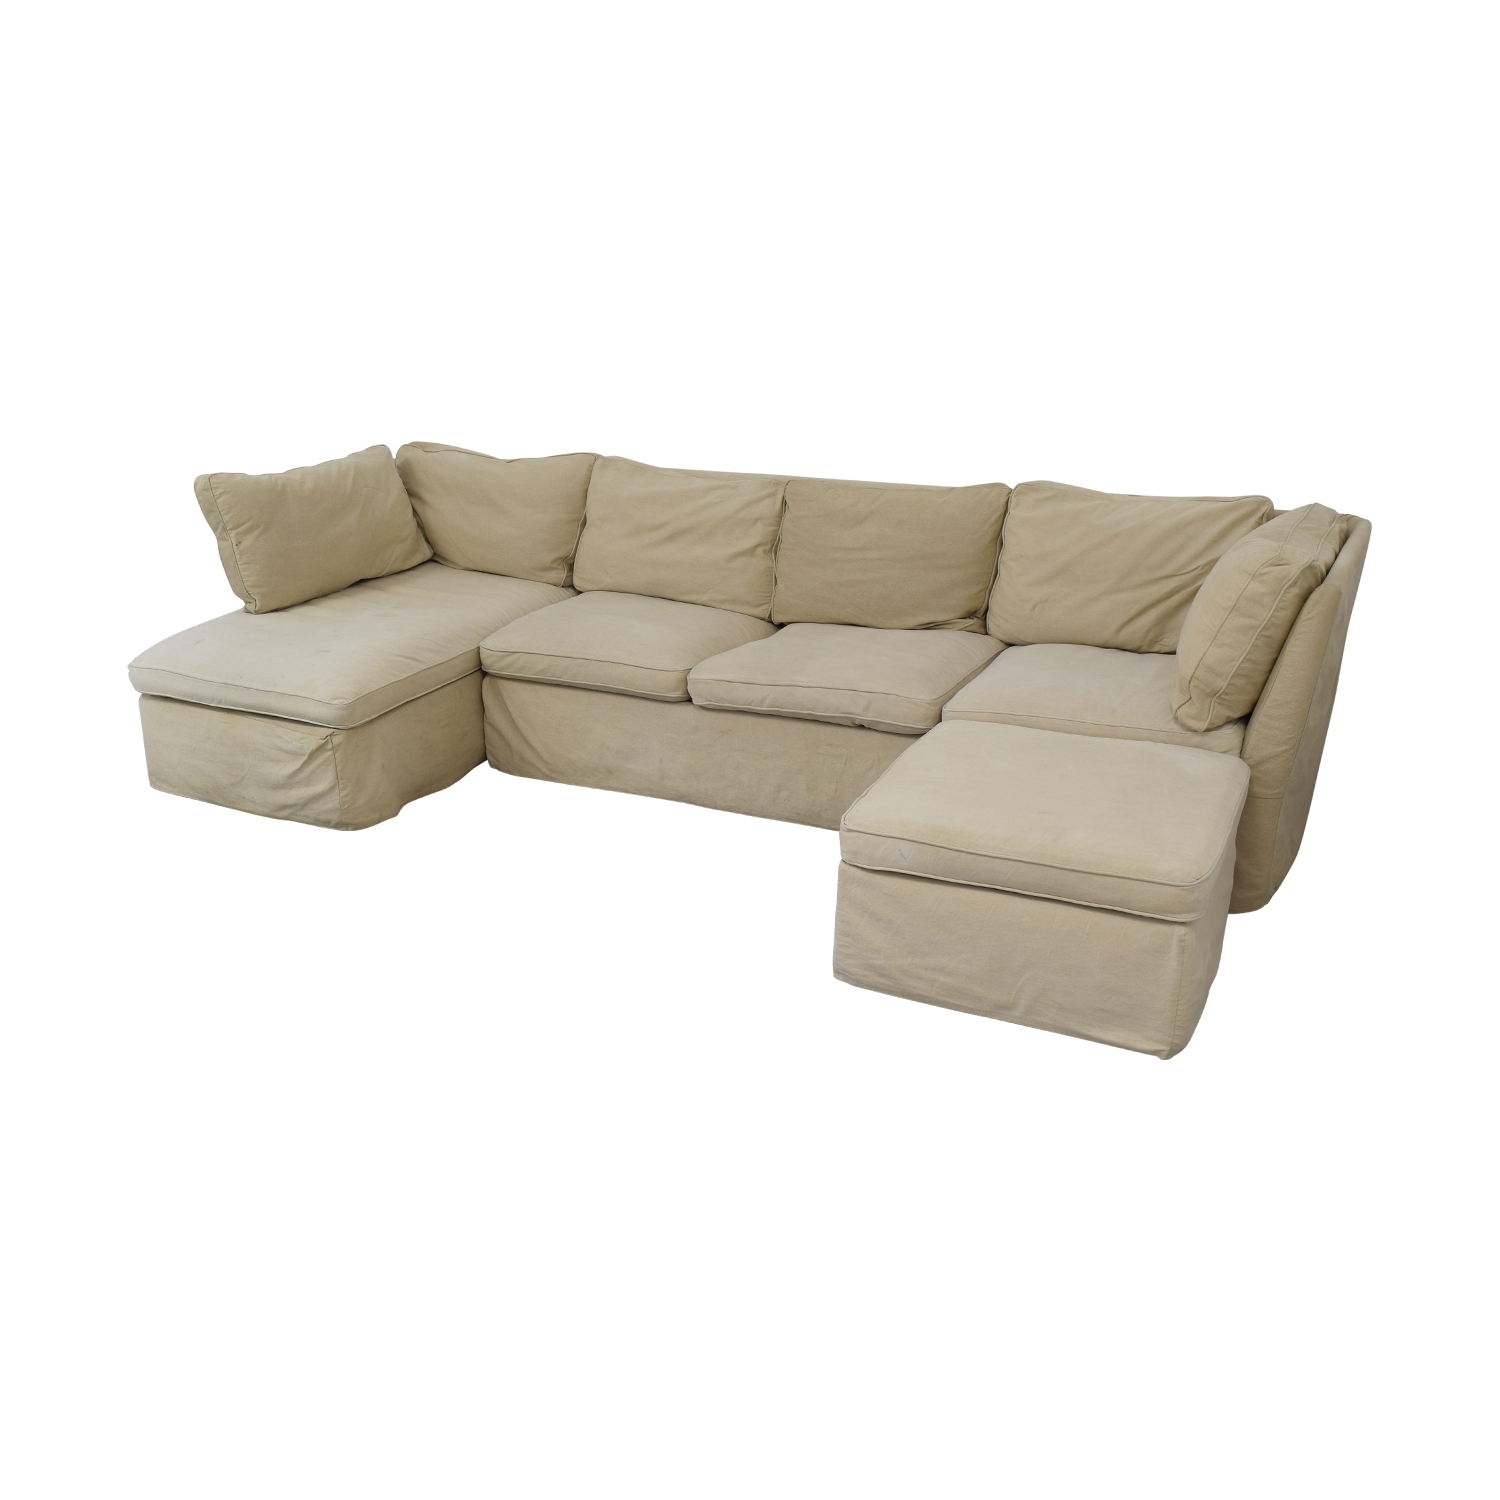 ABC Carpet & Home Sectional with Ottoman ABC Carpet & Home